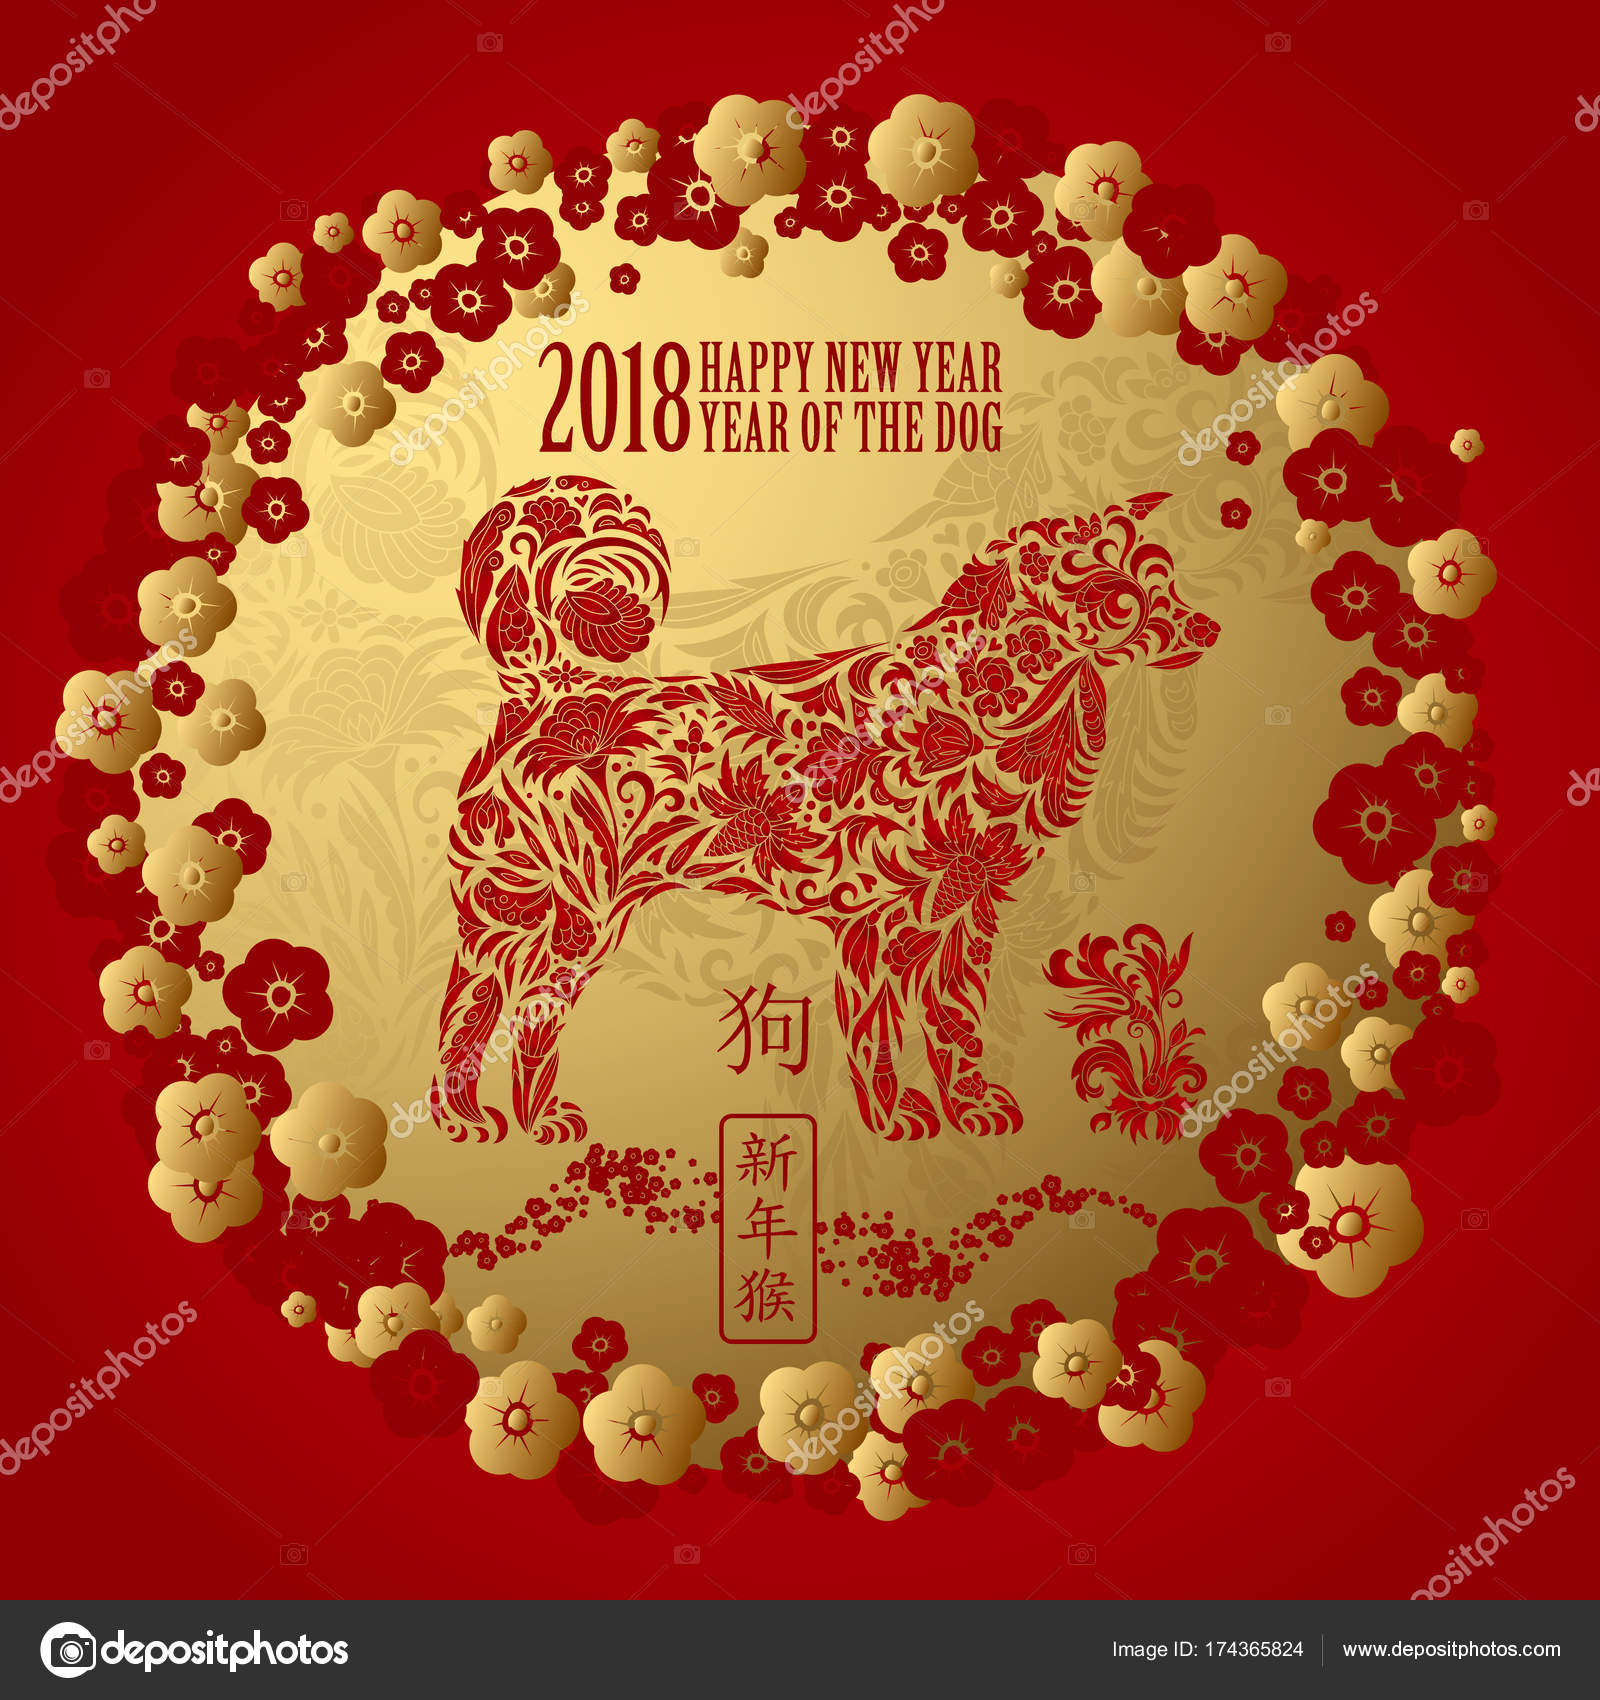 chinese new year emblem 2018 year of dog vector illustration hieroglyph translation dog happy new year zodiac sign with traditional sakura cherry